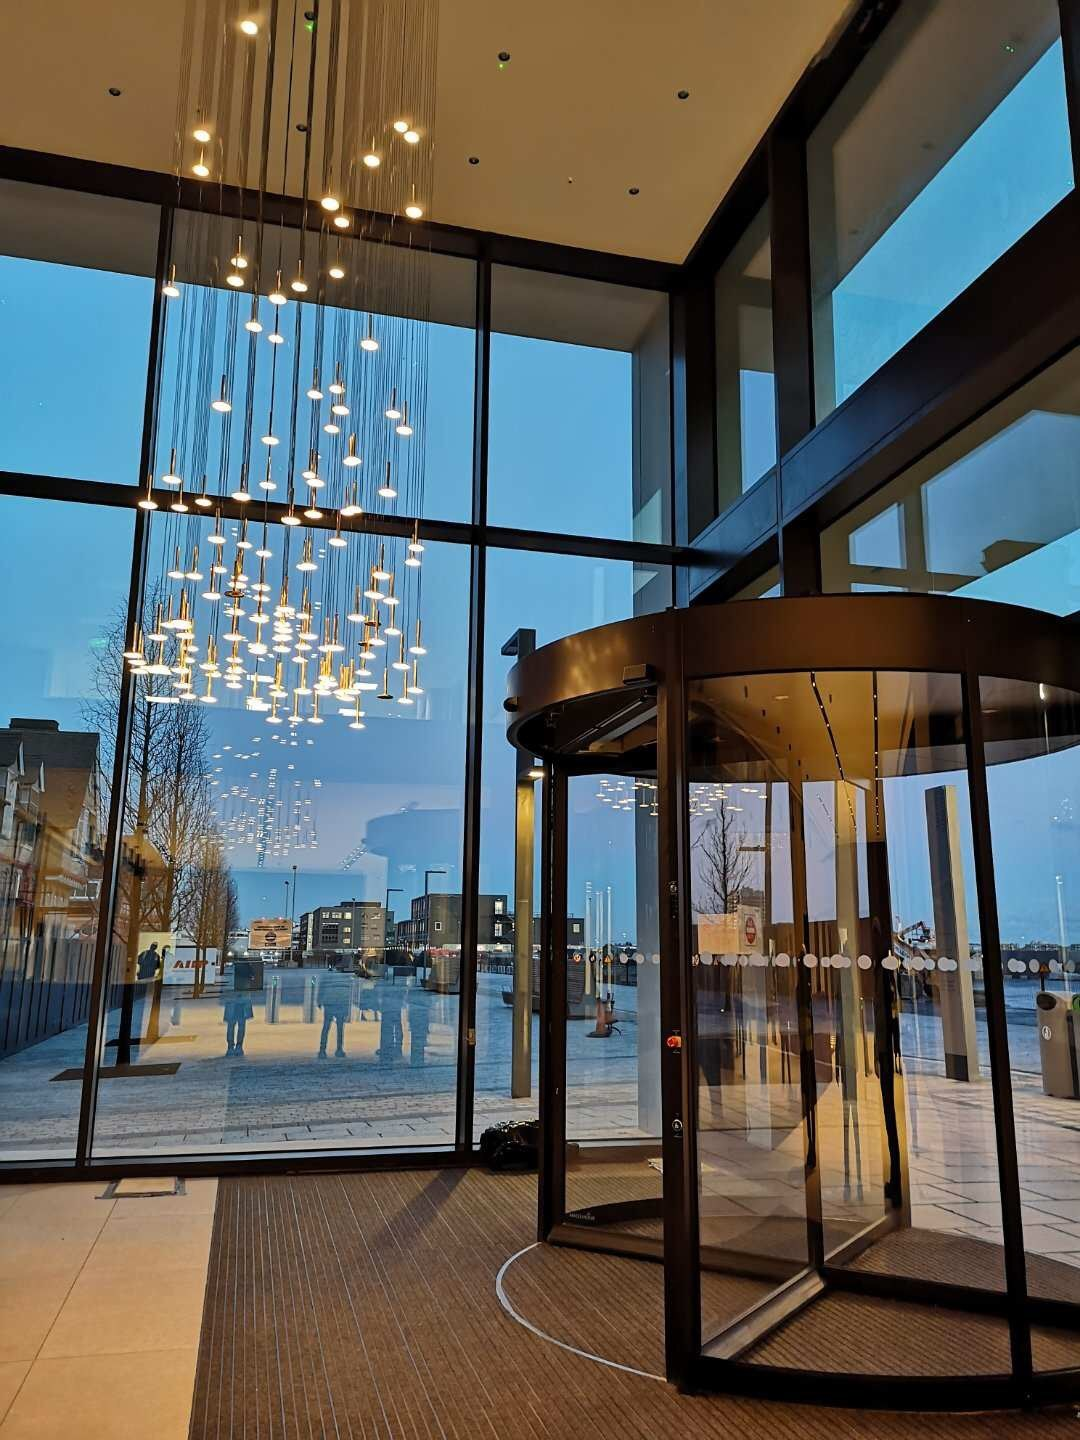 A building entrance with revolving doors on the banks of the Royal Albert Dock